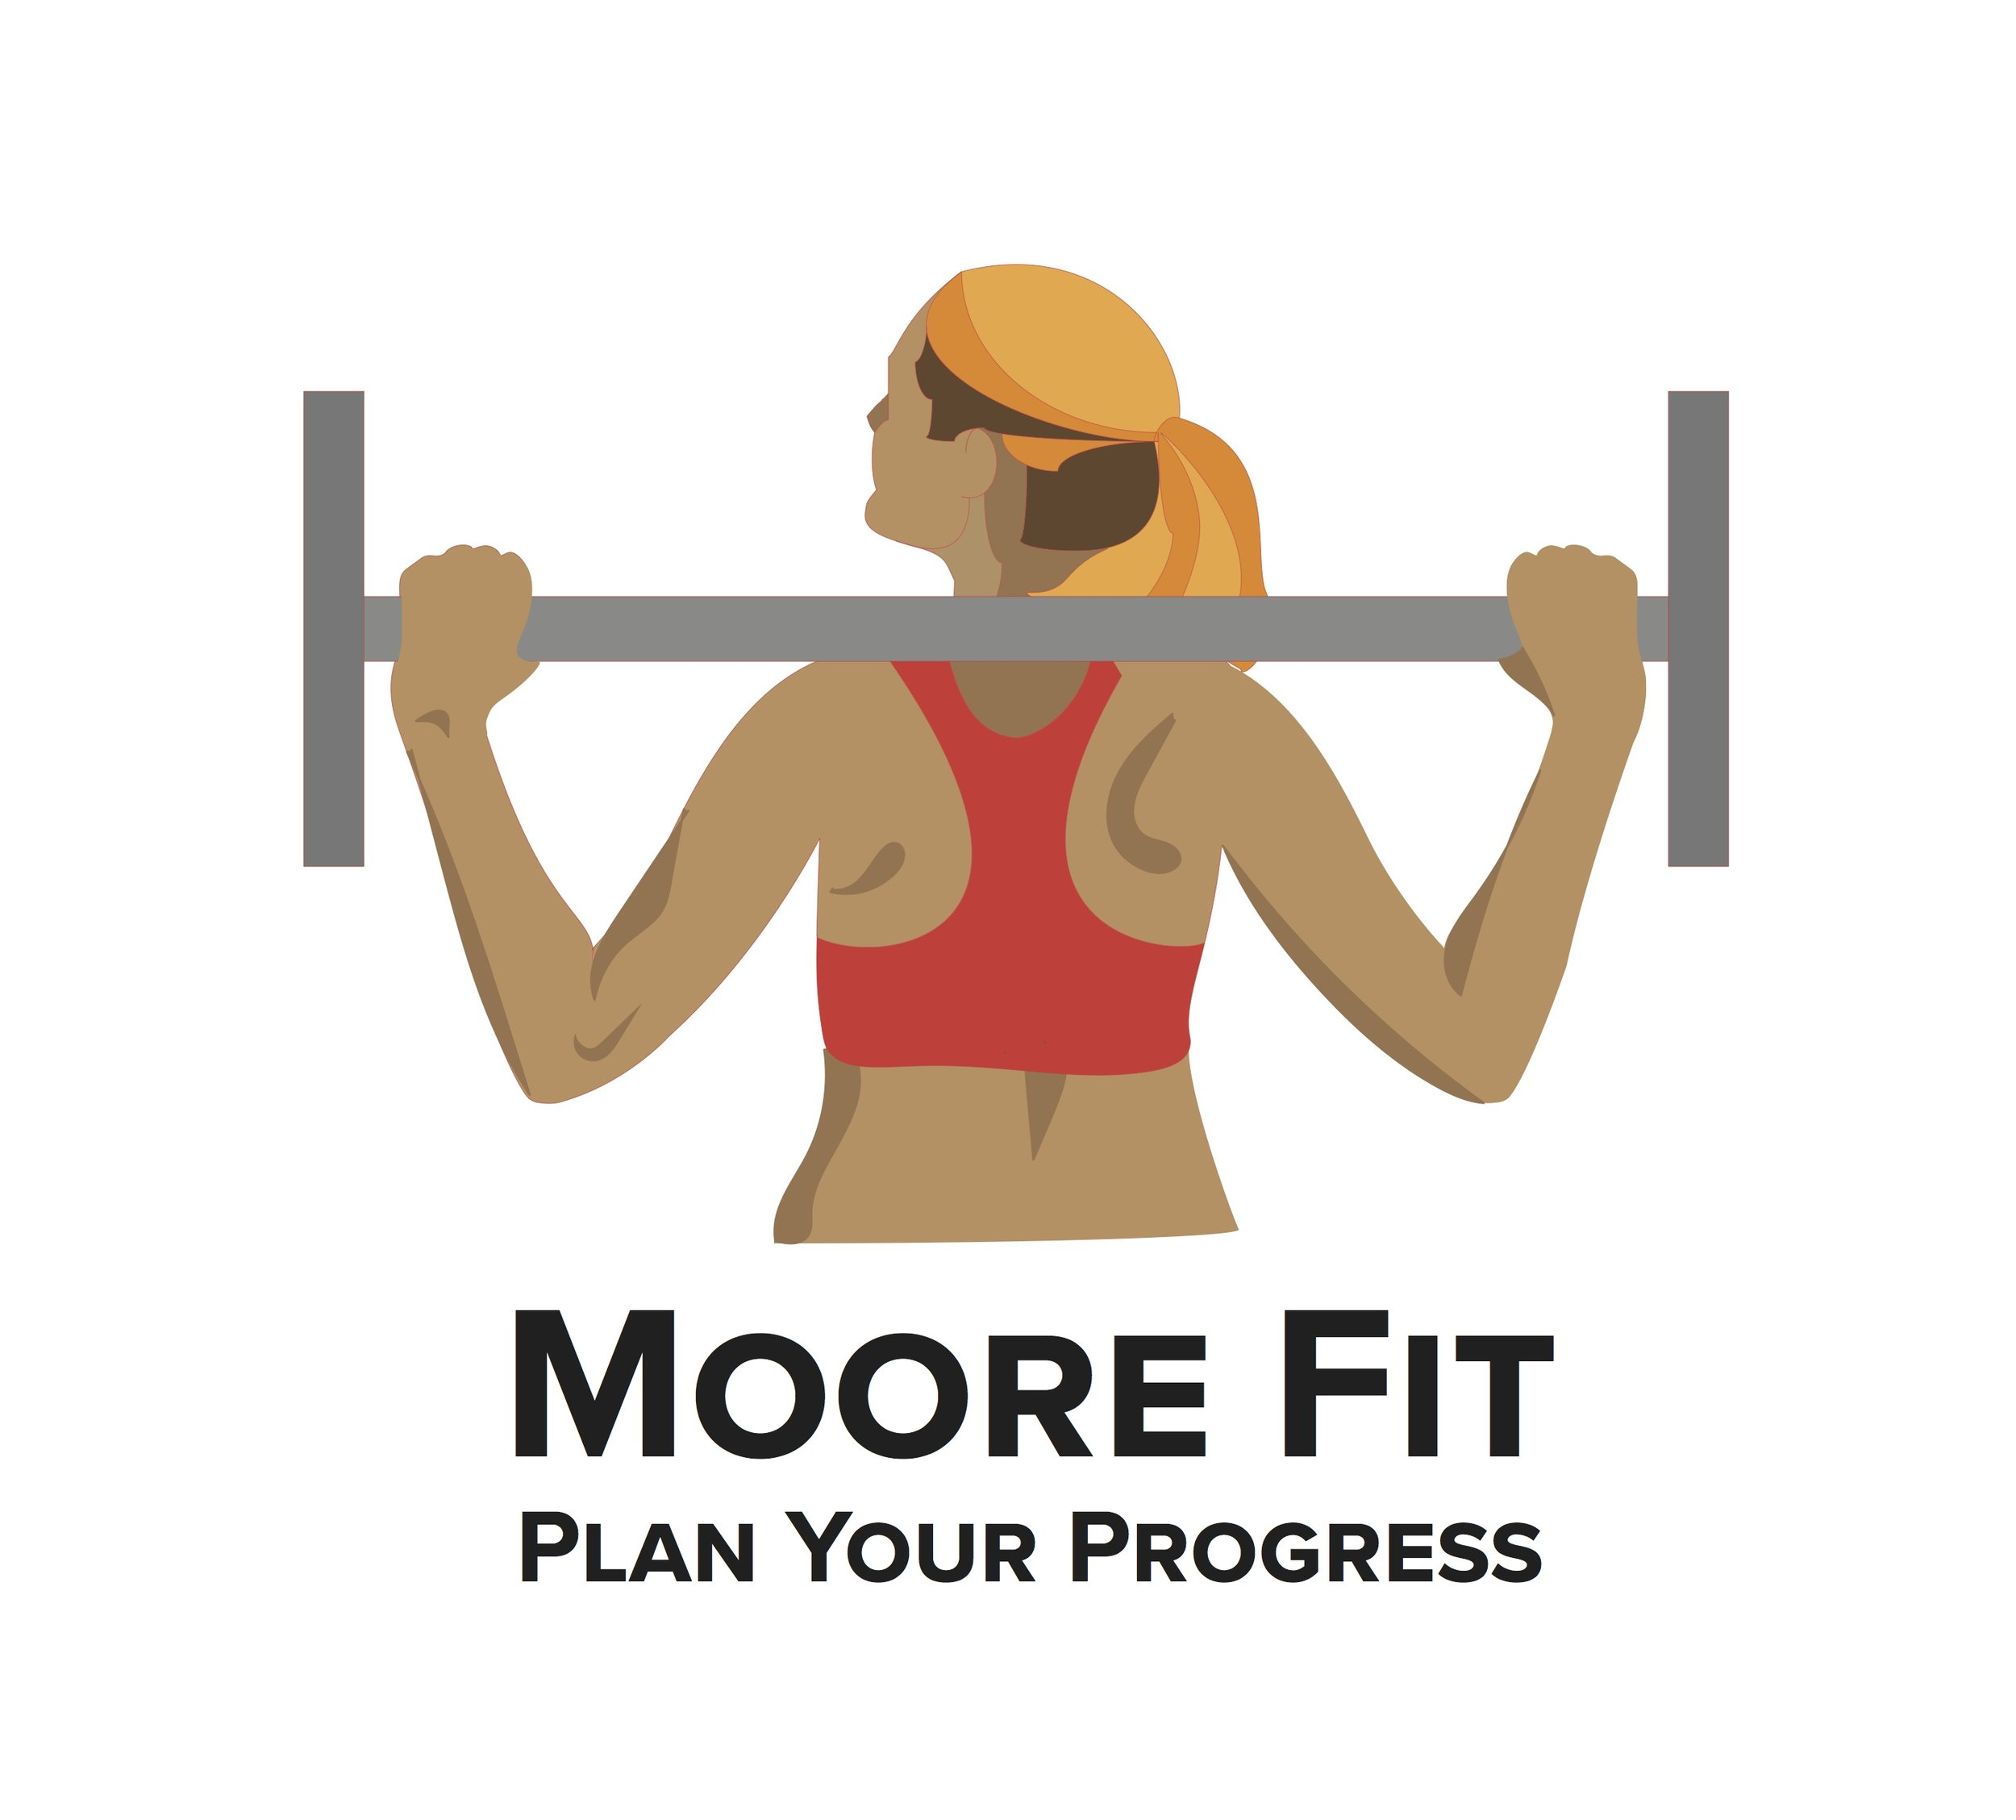 Moore fit - Moore Fit is an application I imagined based on personal training sessions with trainer Melissa Moore- I wanted to build an app that encourages people, particularly women, to diversify their exercise routines with strength training and cardio.  Many women are nervous about weightlifting because it seems masculine.  I found in my fitness journey that weightlifting helps prevent injuries and supports overall health- for this reason, I wanted the main image to be a woman lifting.  I also represented a diverse fitness schedule among the pages and icons to encourage variety exercise and health benefits beyond weight loss.